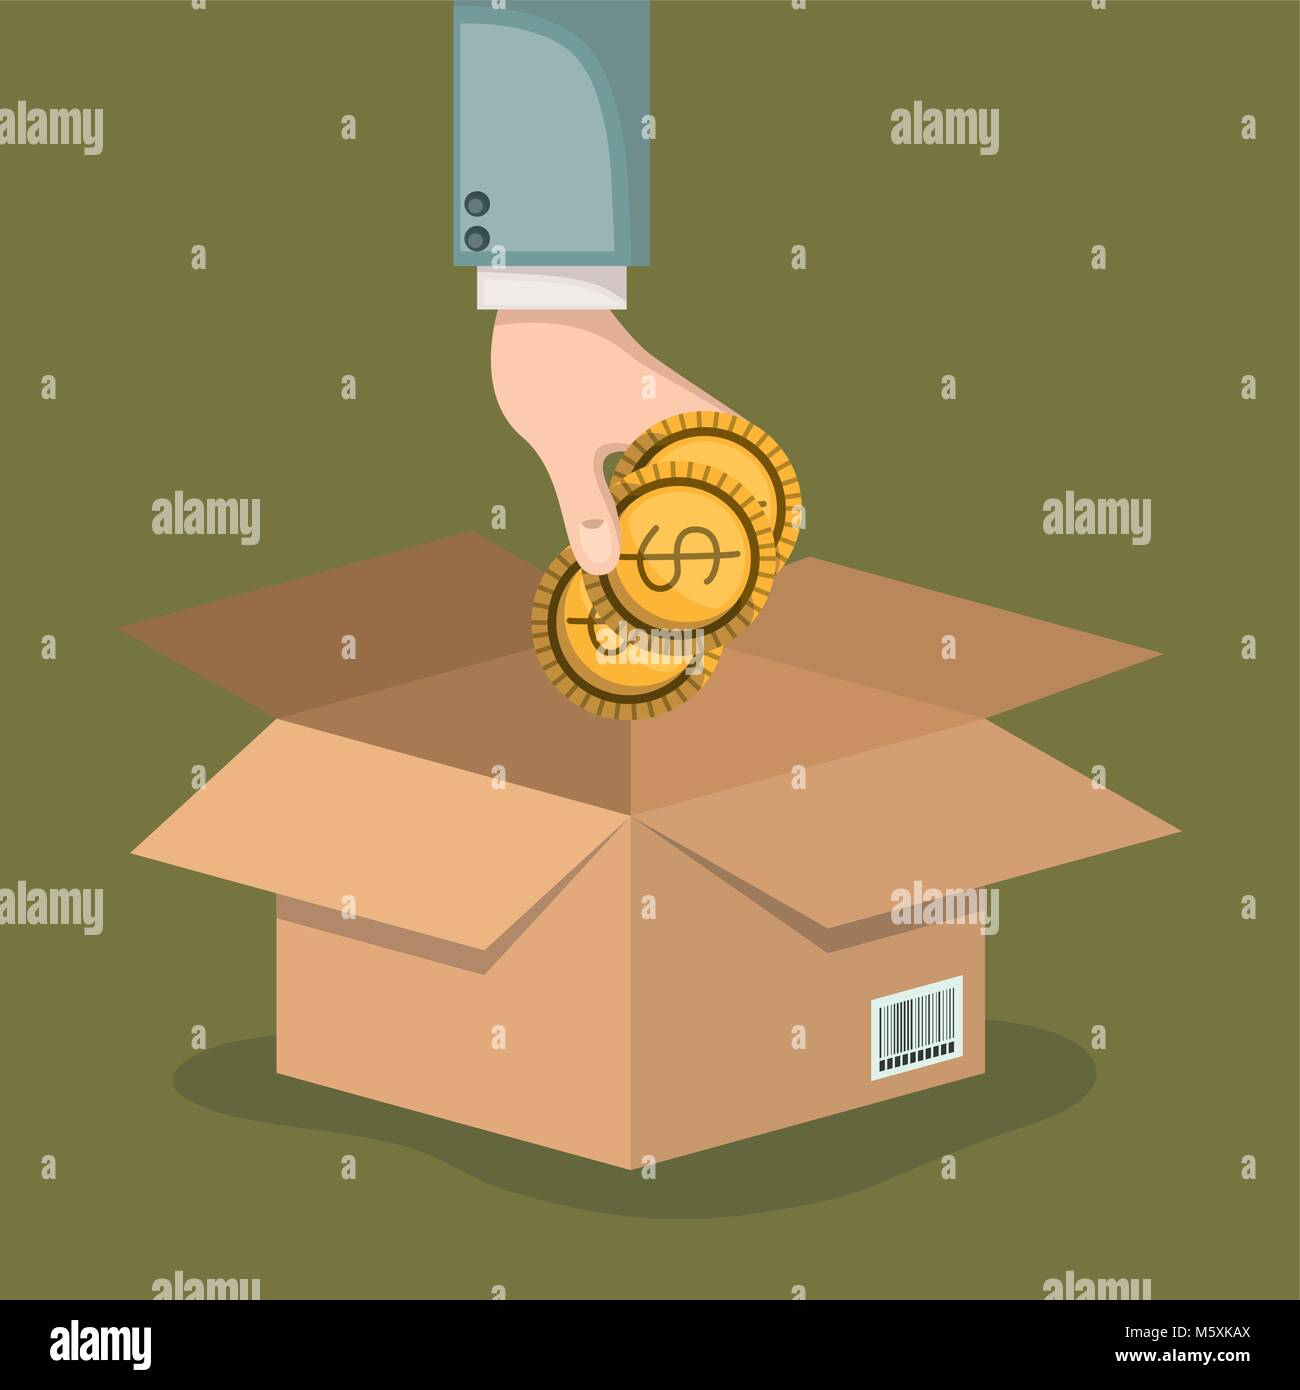 crowd funding poster with hand depositing coins in cardboard box in background olive color - Stock Image